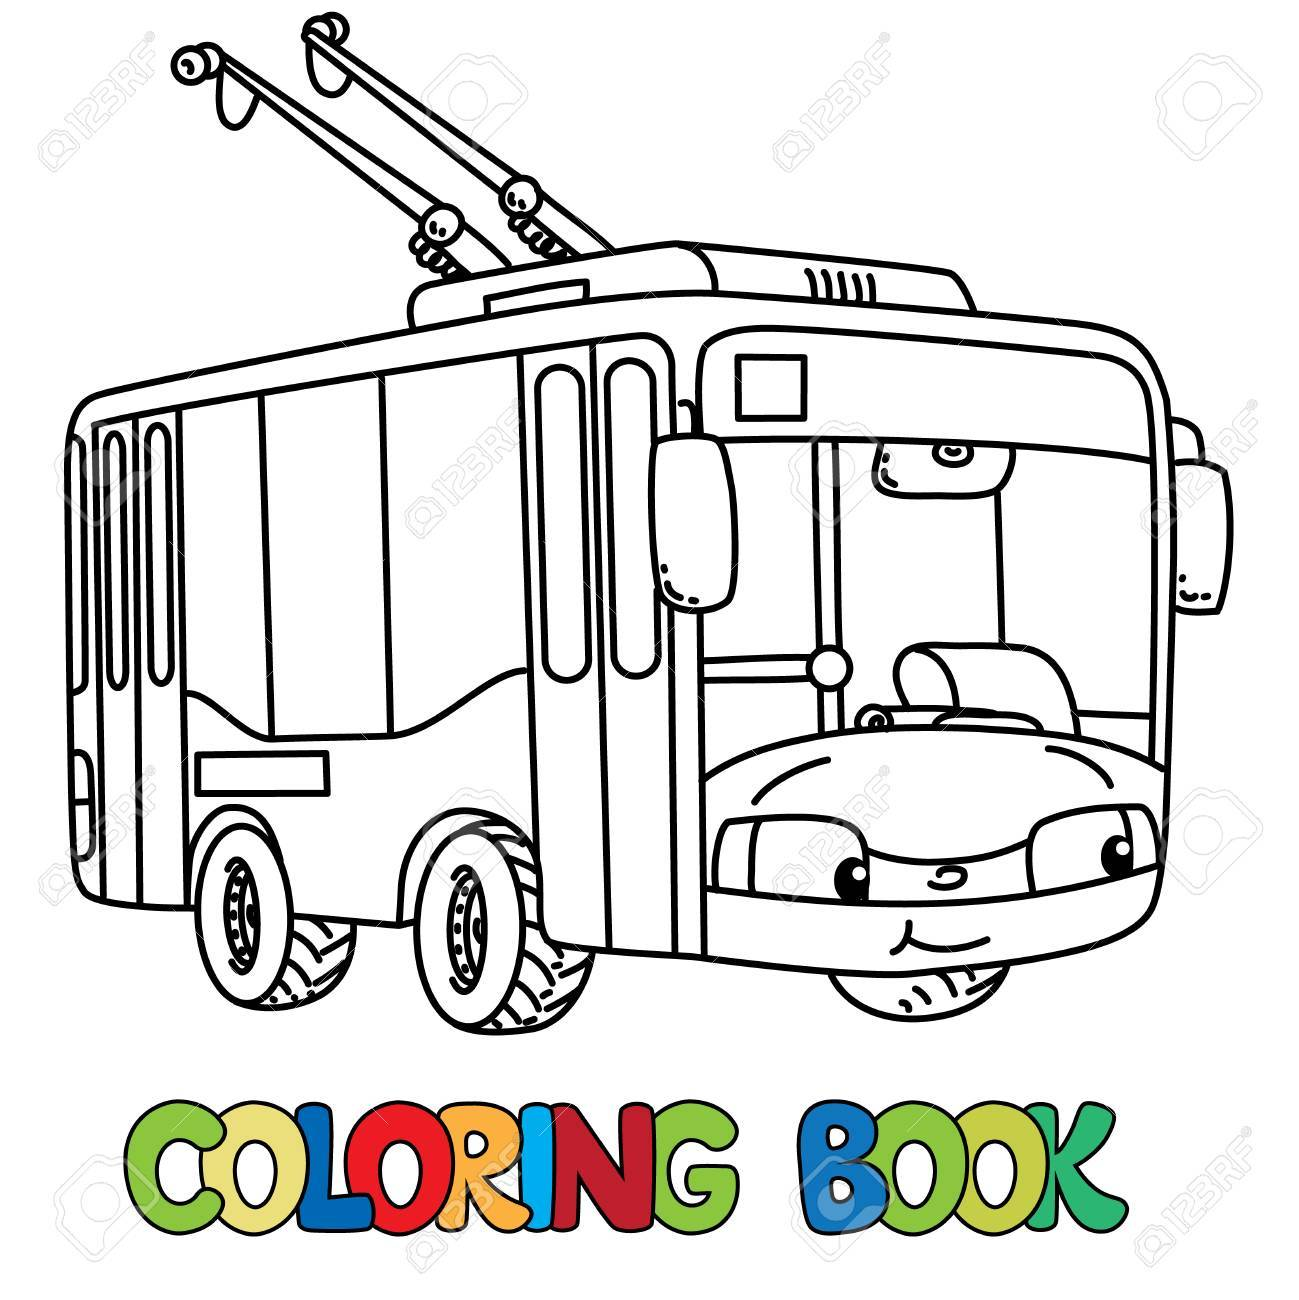 Trolley Or Trolleybus Coloring Book For Kids. Small Funny Vector ...